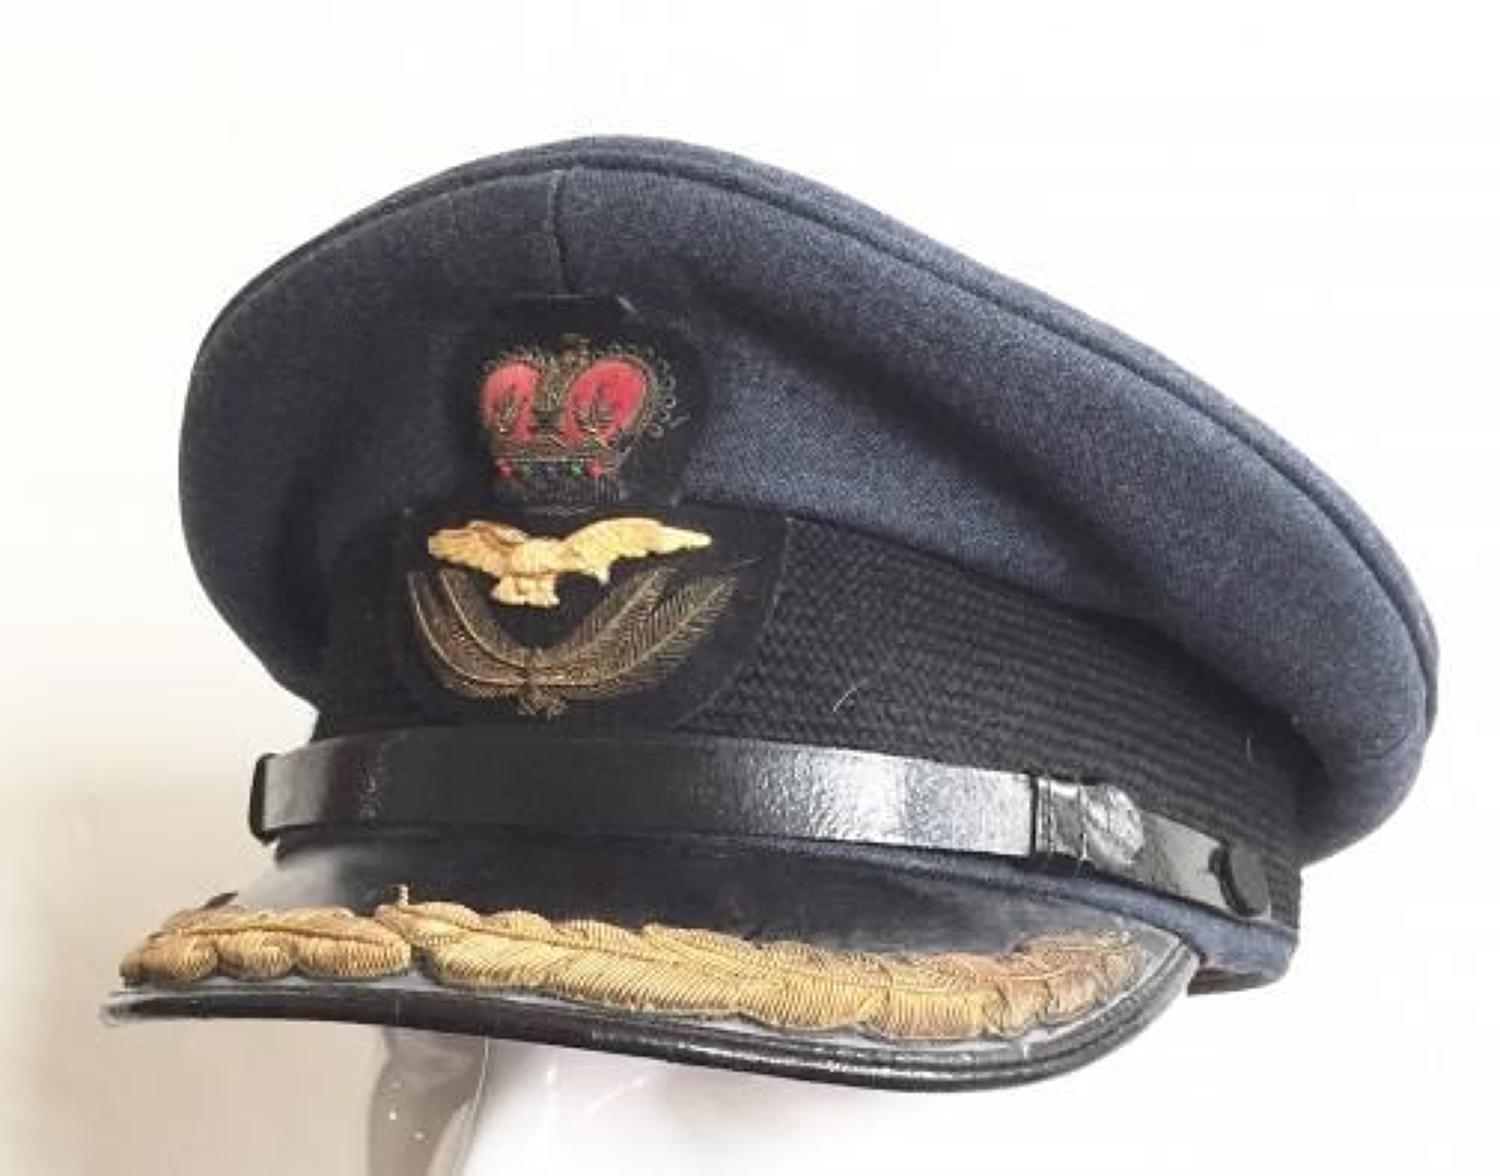 RAF Cold War Period Group Captain's Cap.